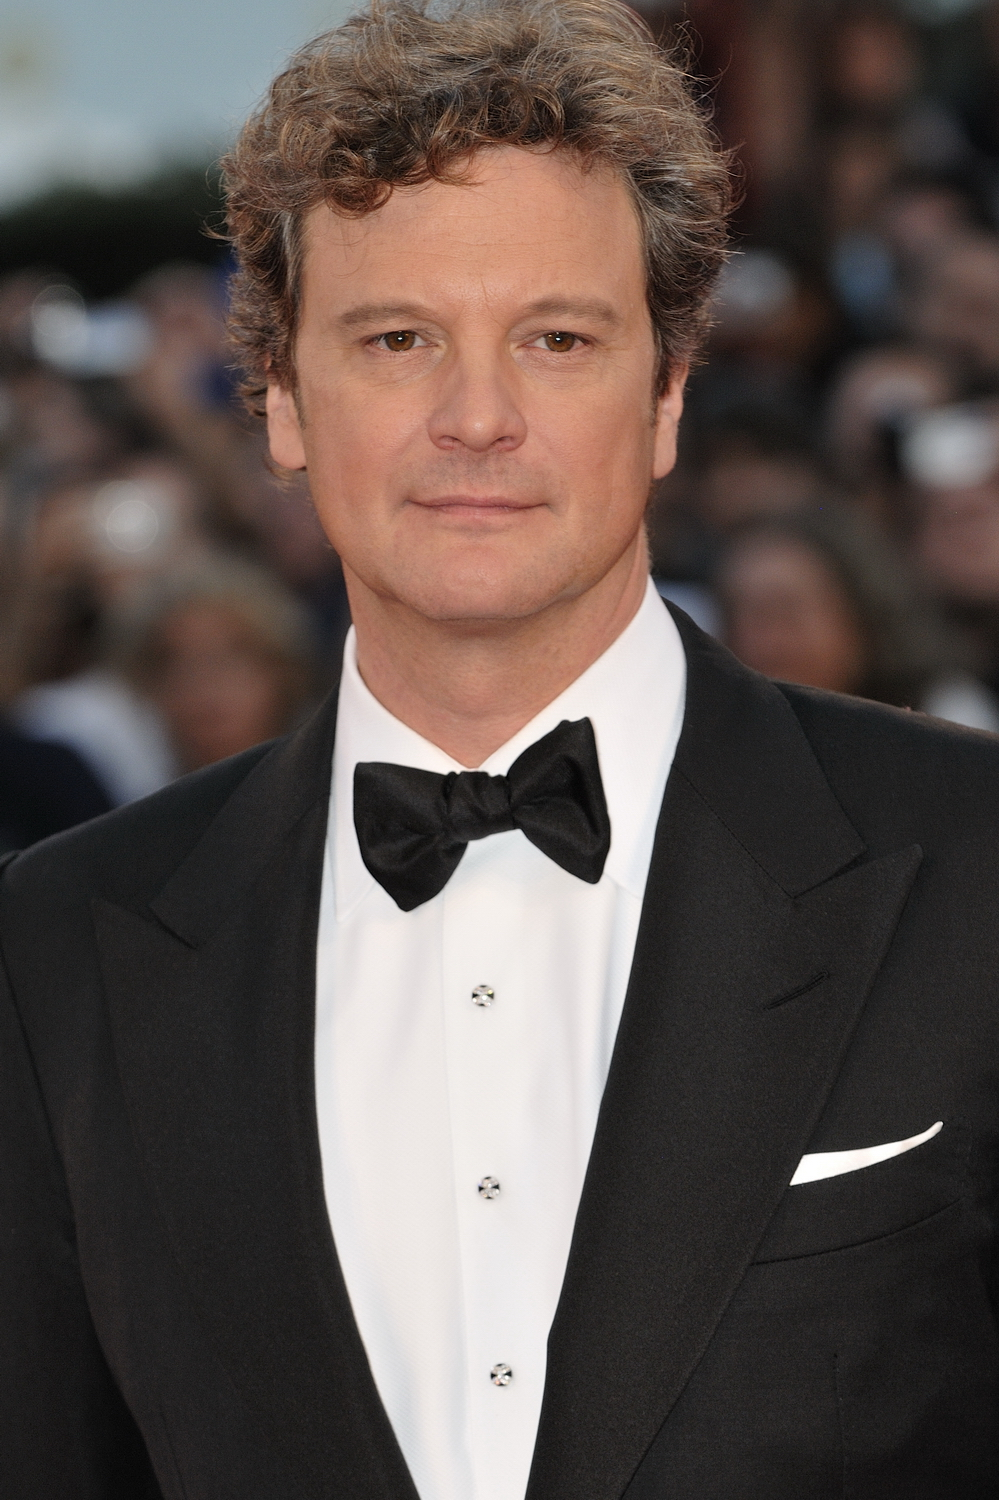 colin firth kingsmancolin firth young, colin firth films, colin firth twitter, colin firth wife, colin firth tumblr, colin firth gif, colin firth height, colin firth movies, colin firth kingsman, colin firth filmography, colin firth facebook, colin firth 2017, colin firth oscar, colin firth wiki, colin firth dorian gray, colin firth and jennifer ehle, colin firth news, colin firth wallpapers, colin firth kingsman 2, colin firth vk